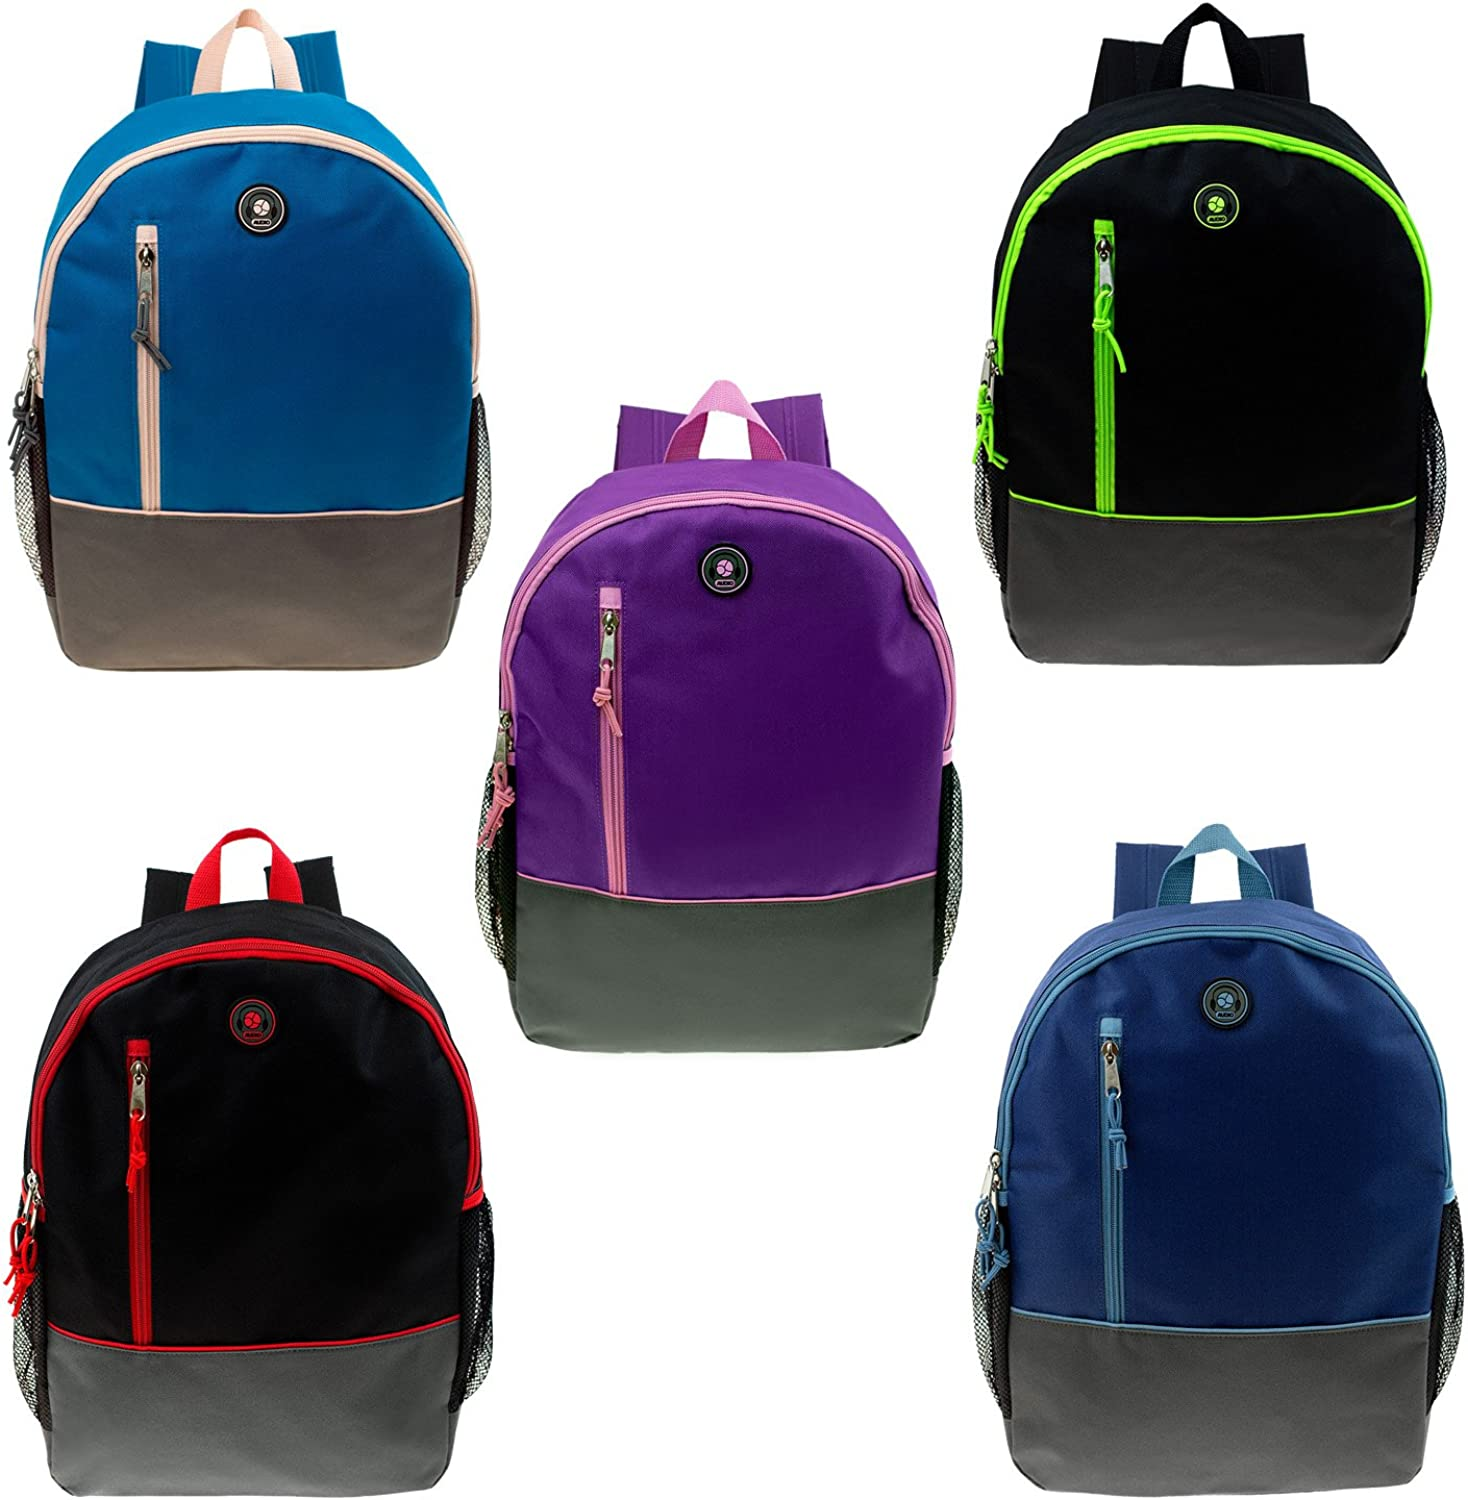 16  Wholesale Backpacks w Headphone Slot and Side Mesh Pockets in 5 Assorted colors  Bulk Case of 24 Bookbags